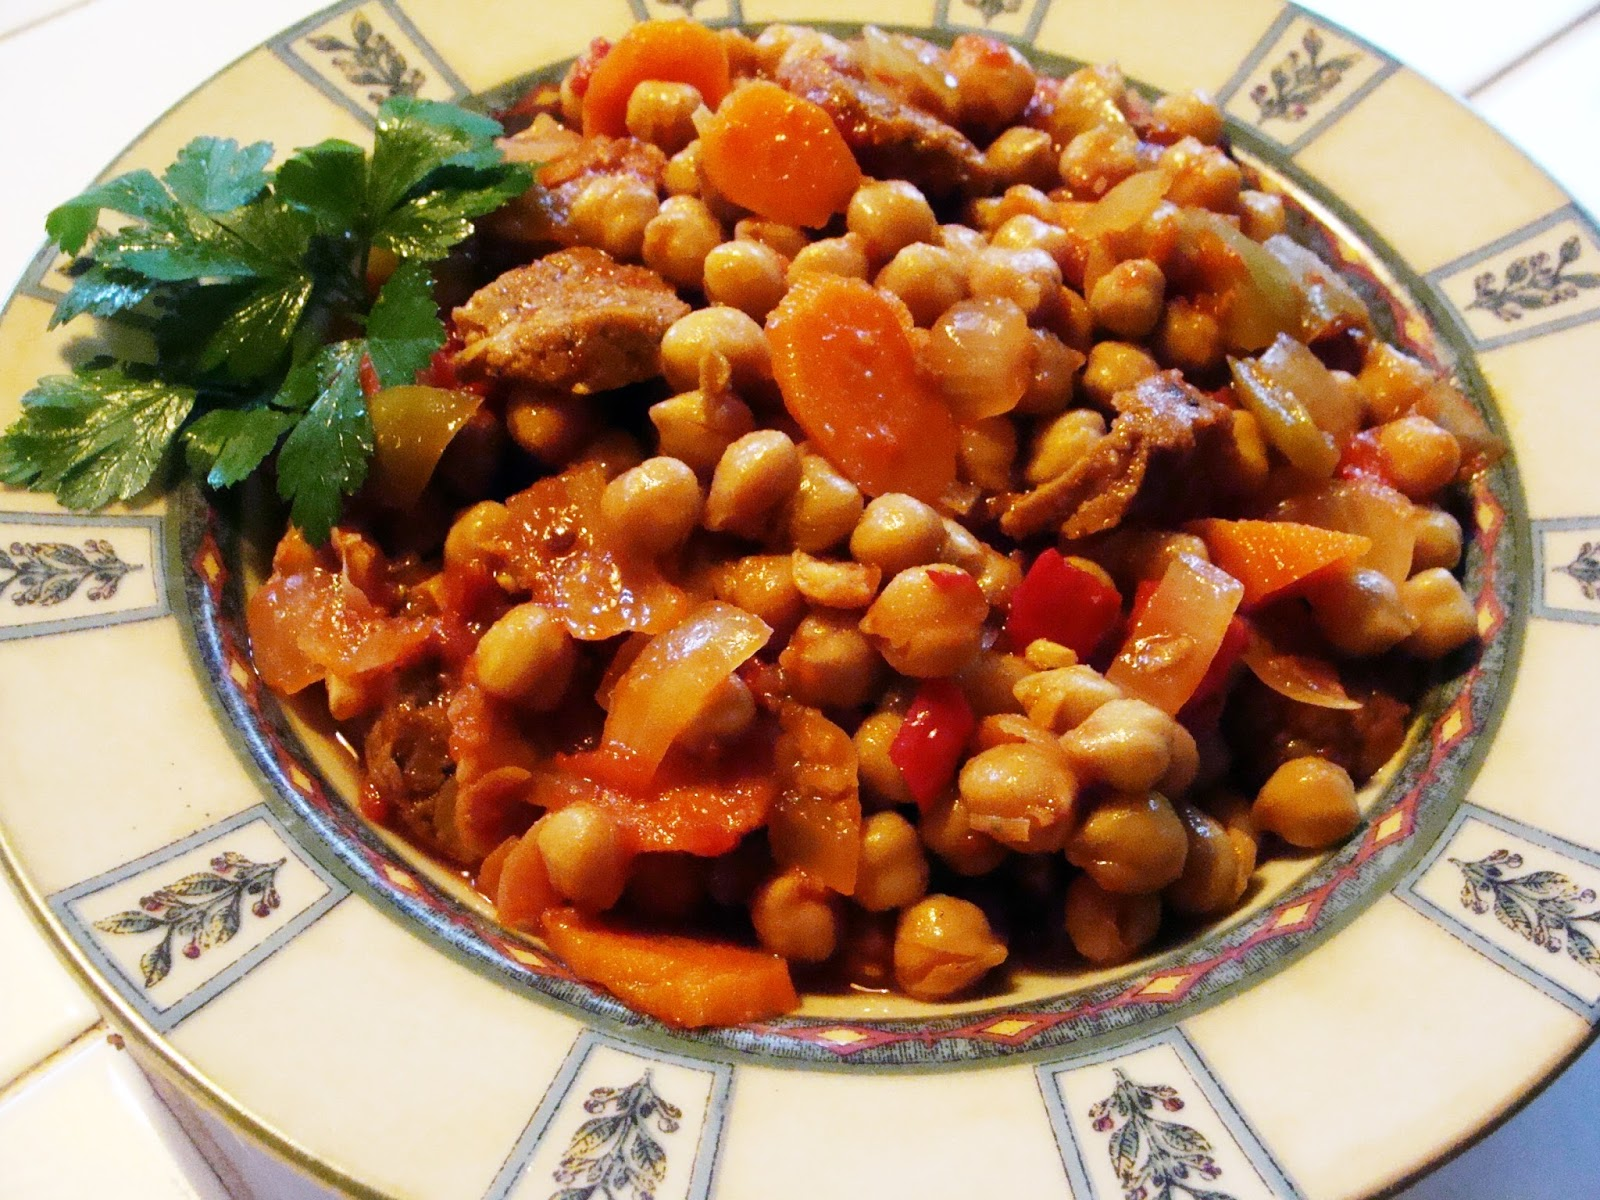 ... / 21st Century Table: SPICY VEGAN BASQUE CHICKPEA & SAUSAGE STEW